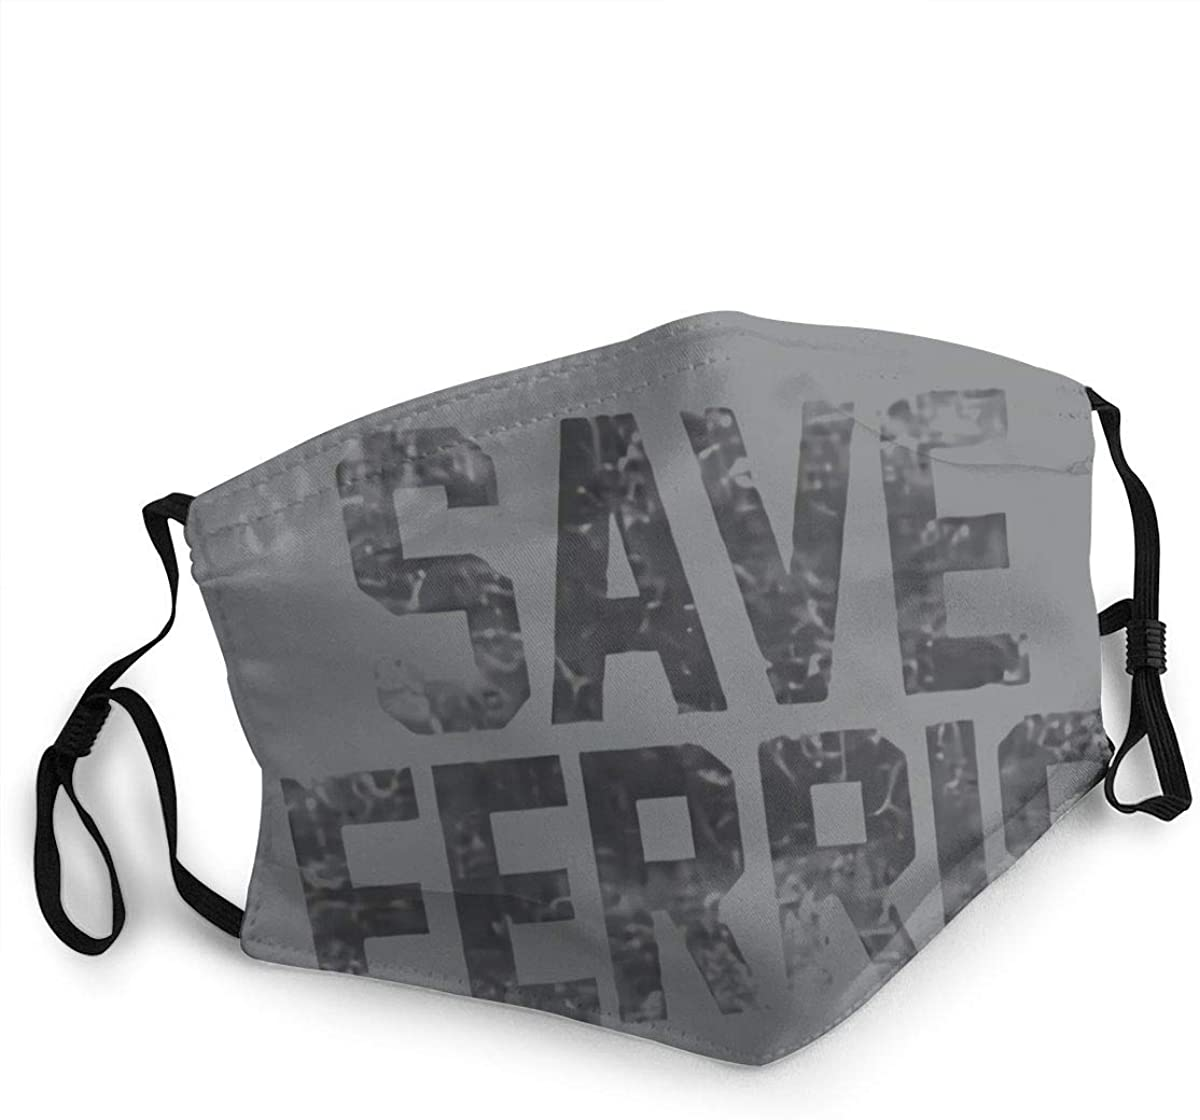 Save Ferris Bueller'S Day Off Can Prevent Allergies, Smog, Exhaust Gas And Low Temperature, Allergic Substances, Etc.